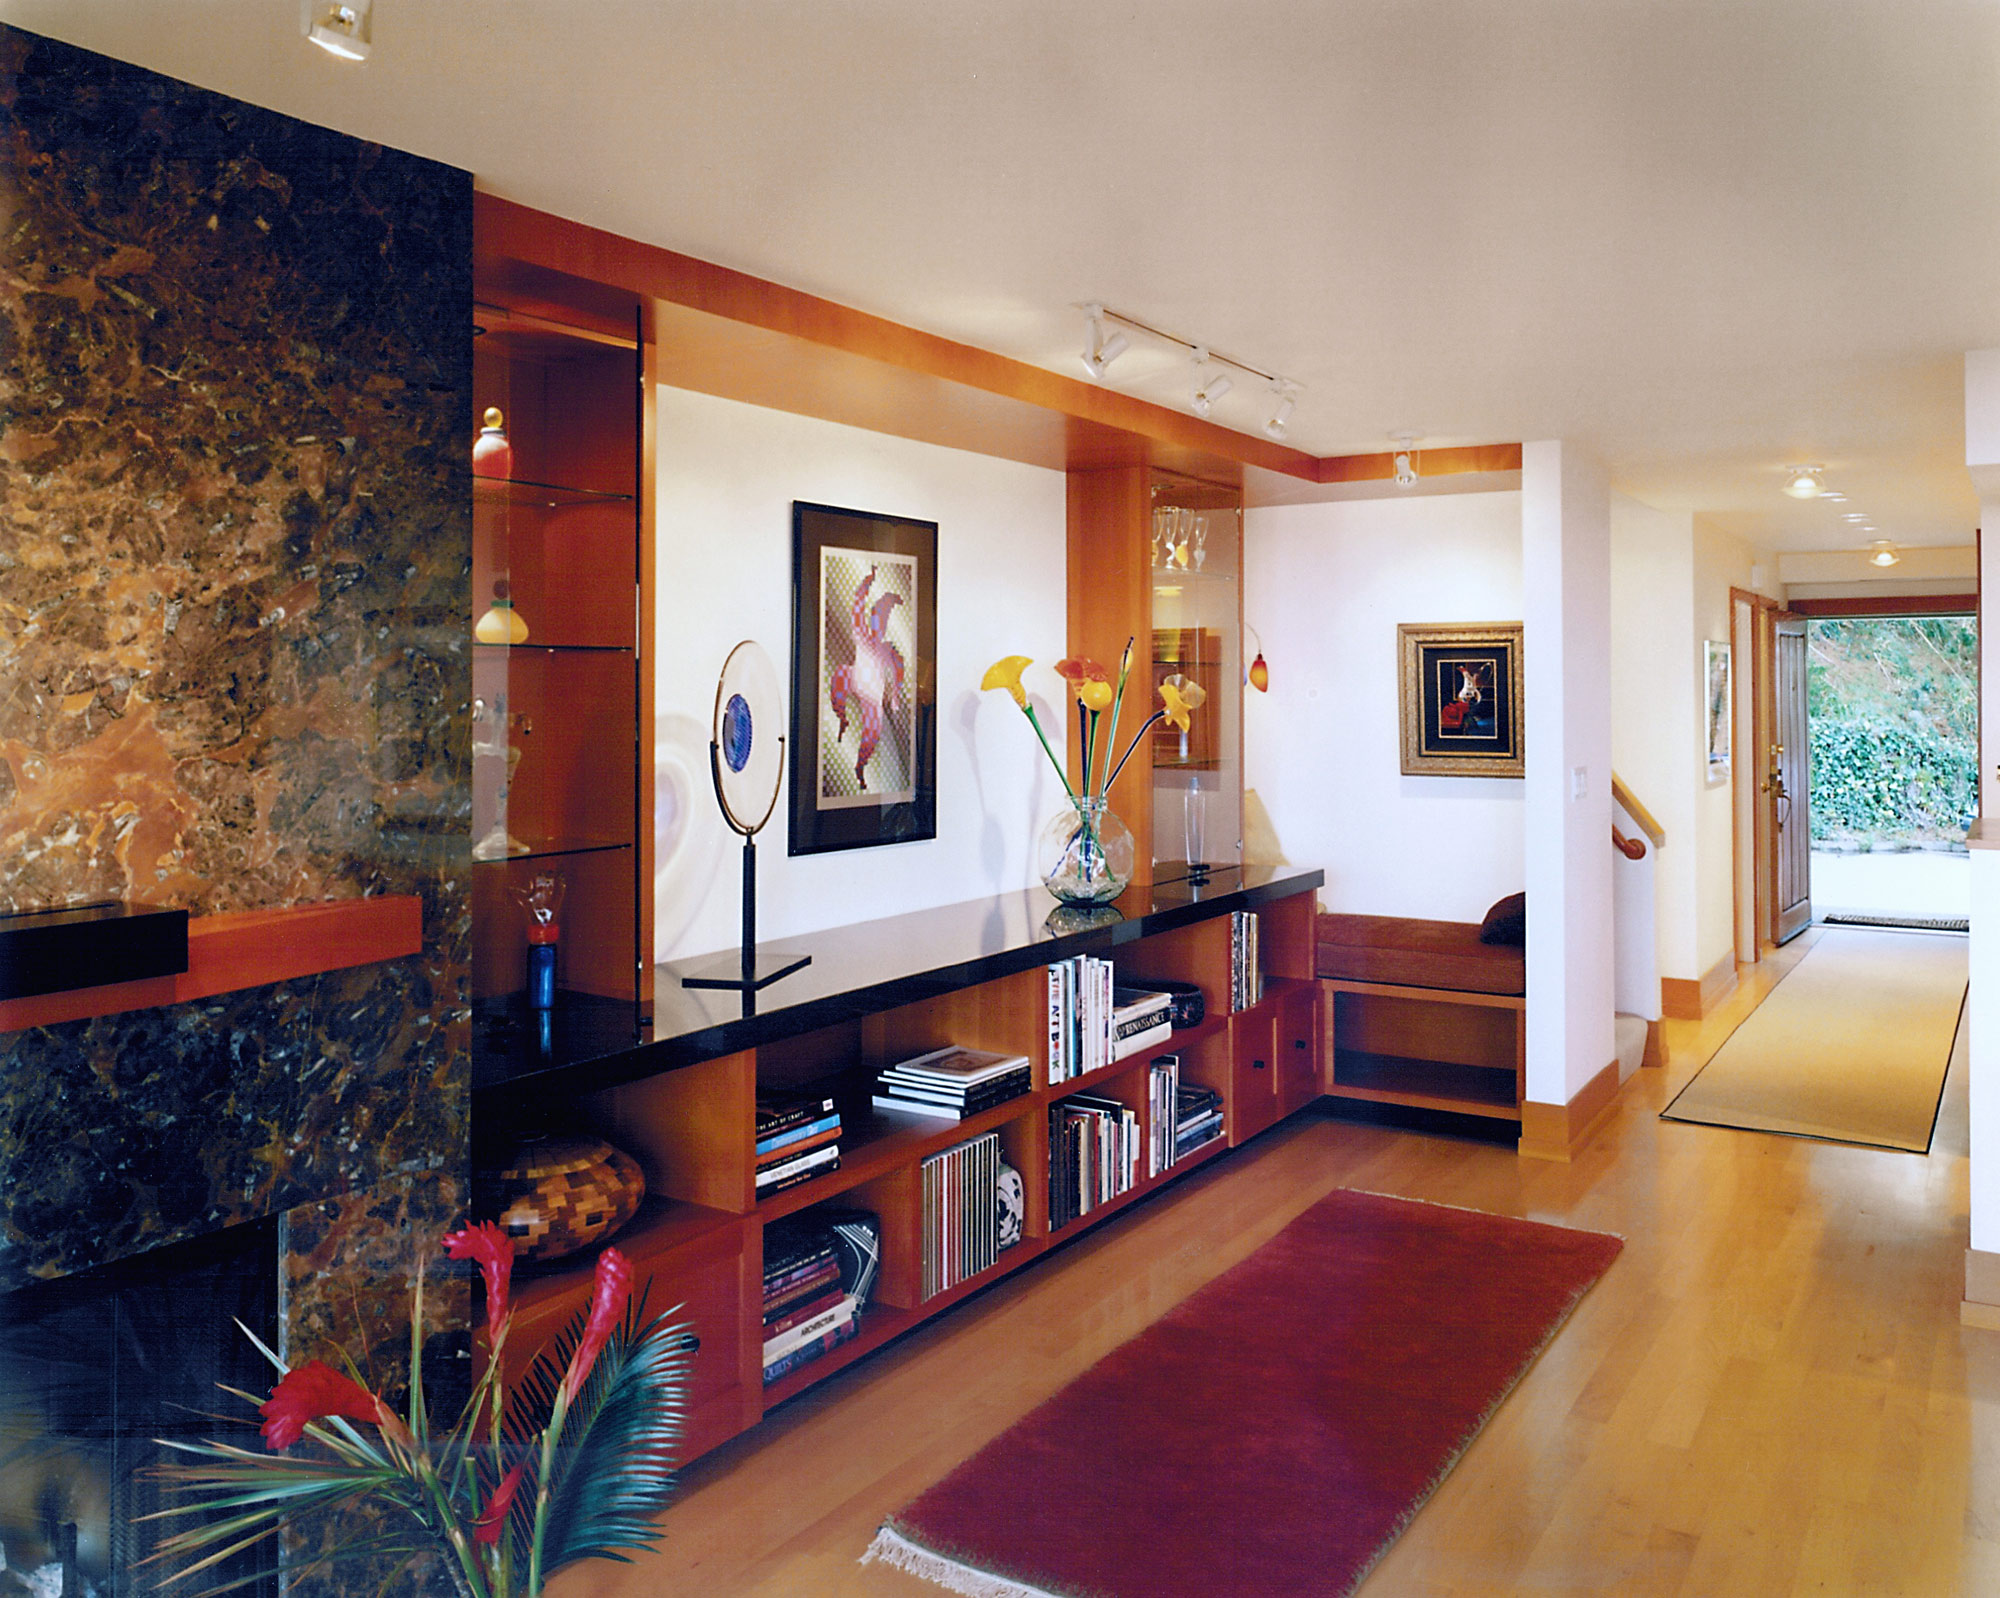 Kaplan-Architects-San Francisco-basement-remodelCabinet-and-halway-view.jpg